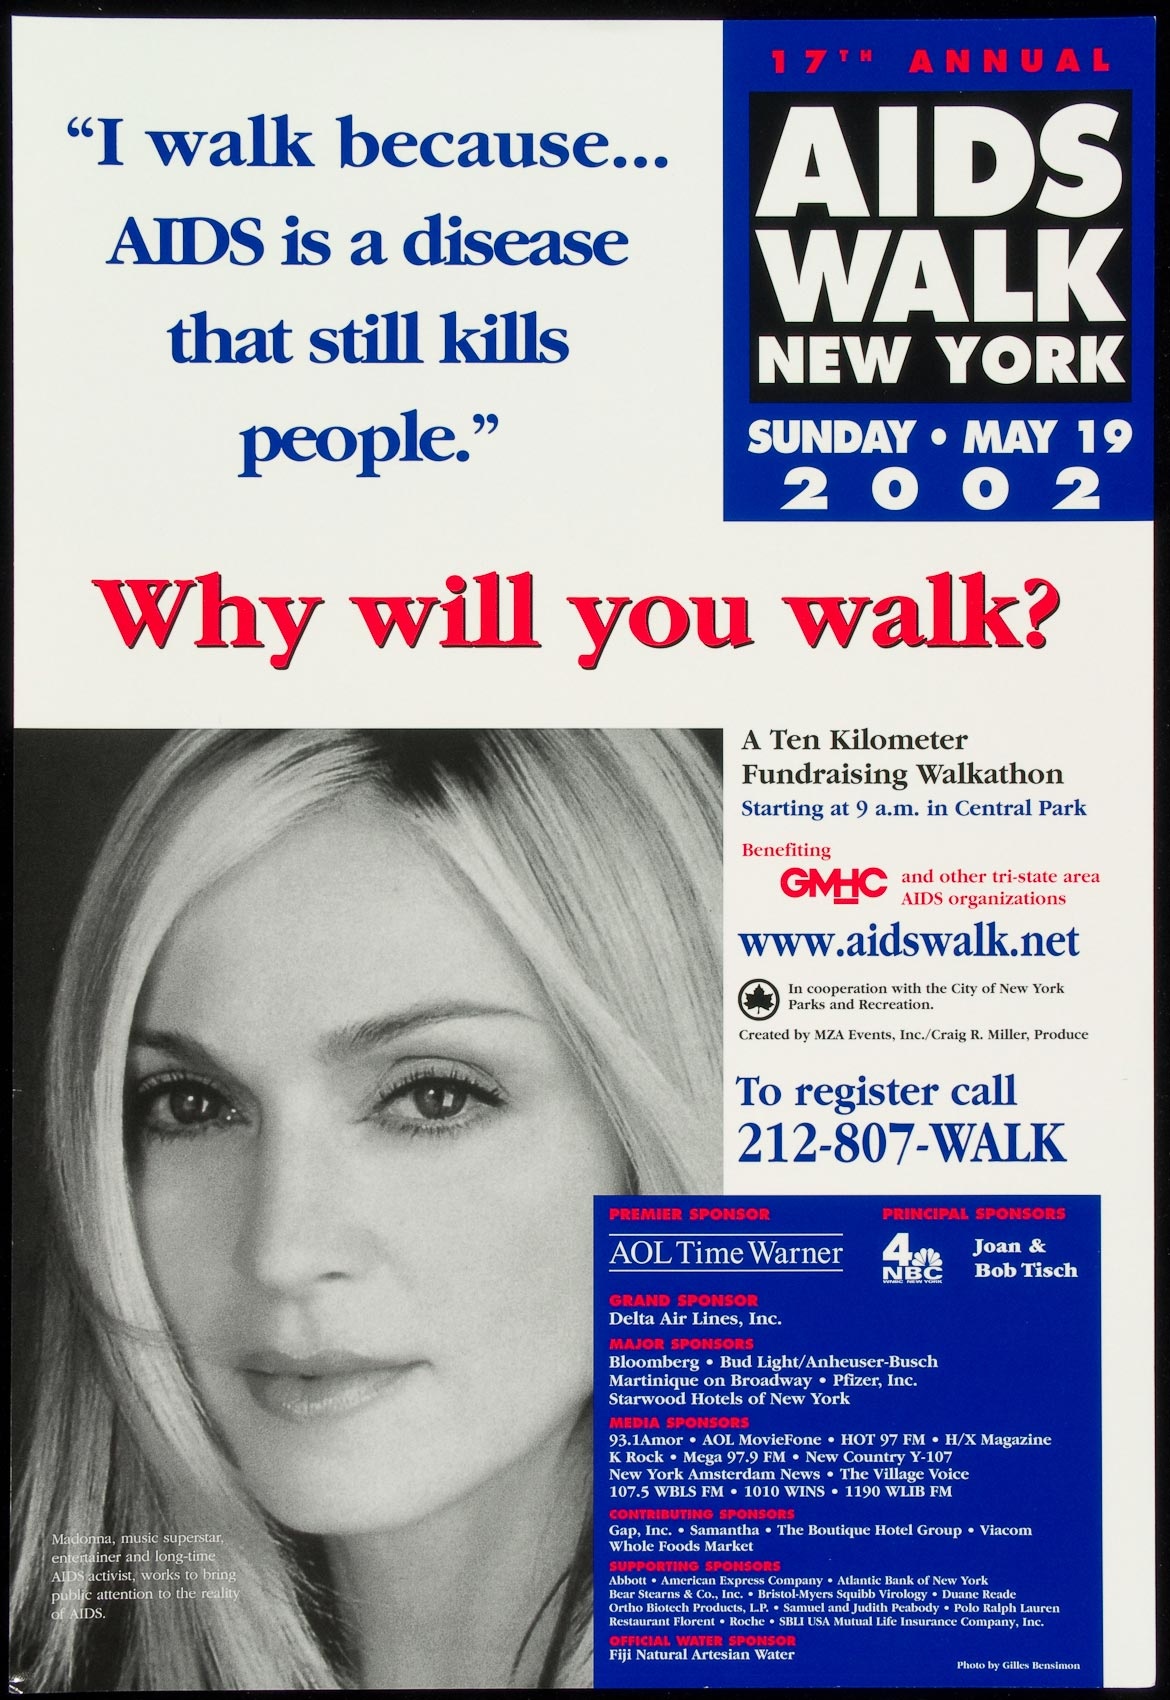 I walk because...Why will you walk?